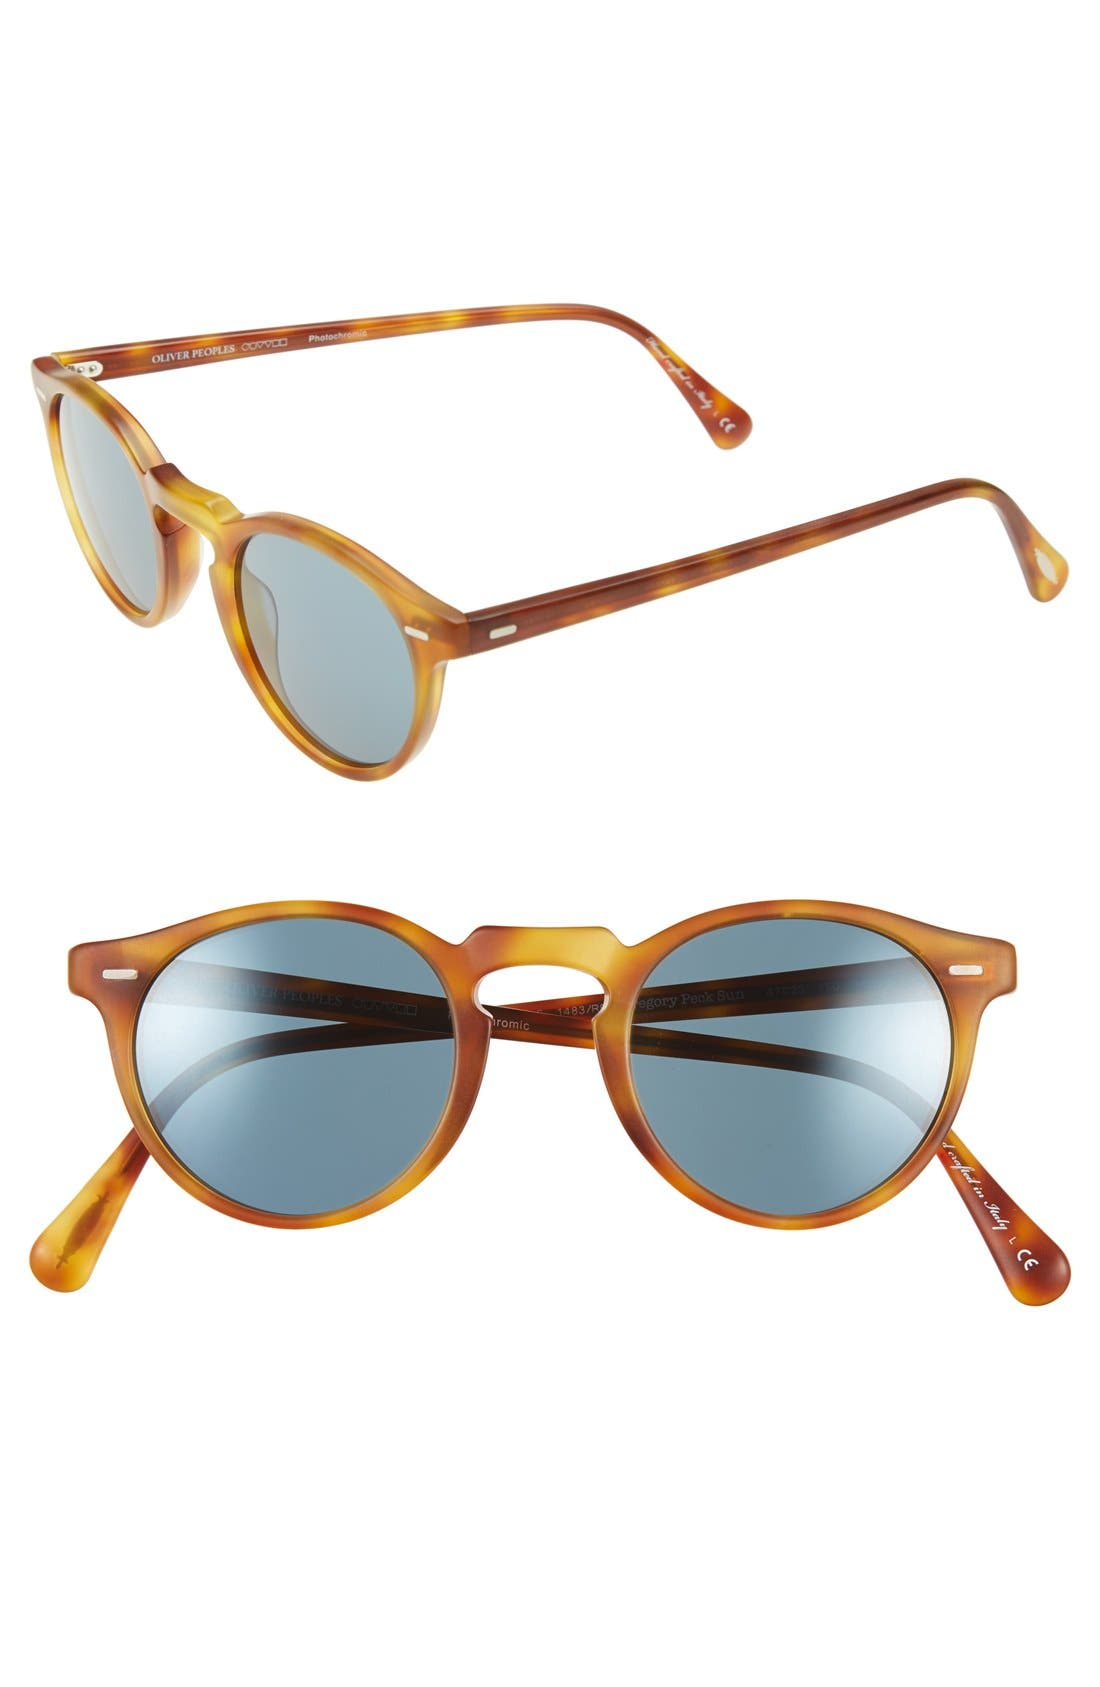 Main Image - Oliver Peoples 'Gregory Peck' 47mm Retro Sunglasses